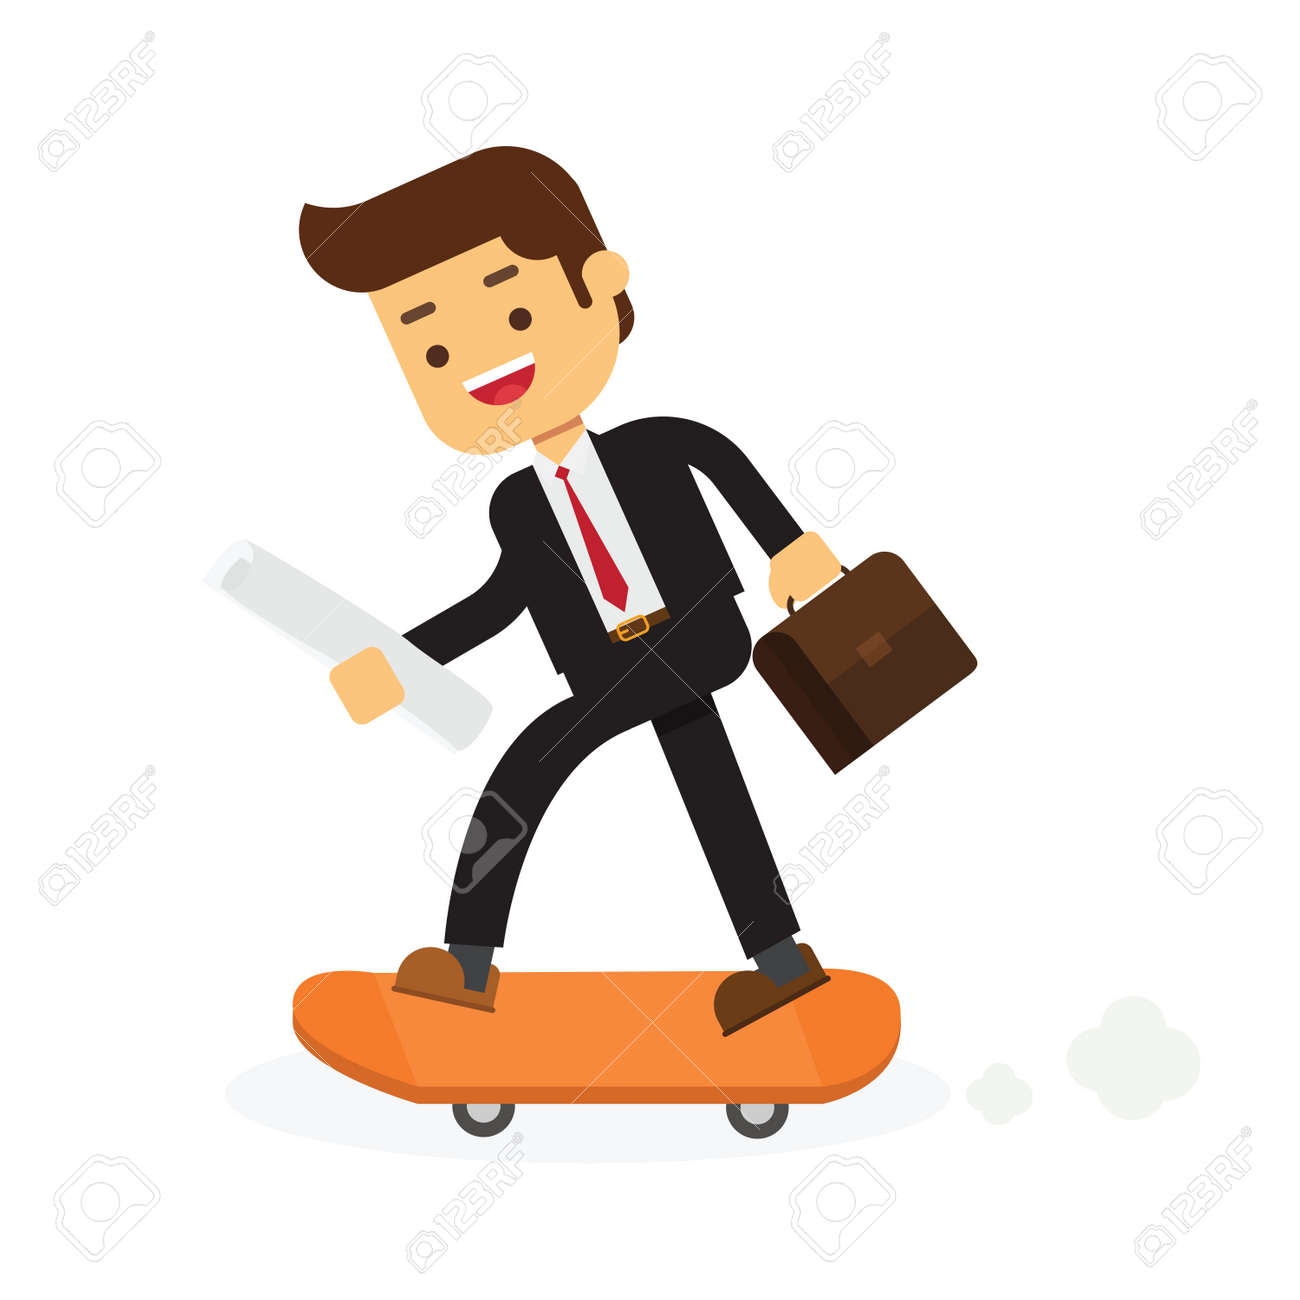 Businessman on skateboard with briefcase - 168316362